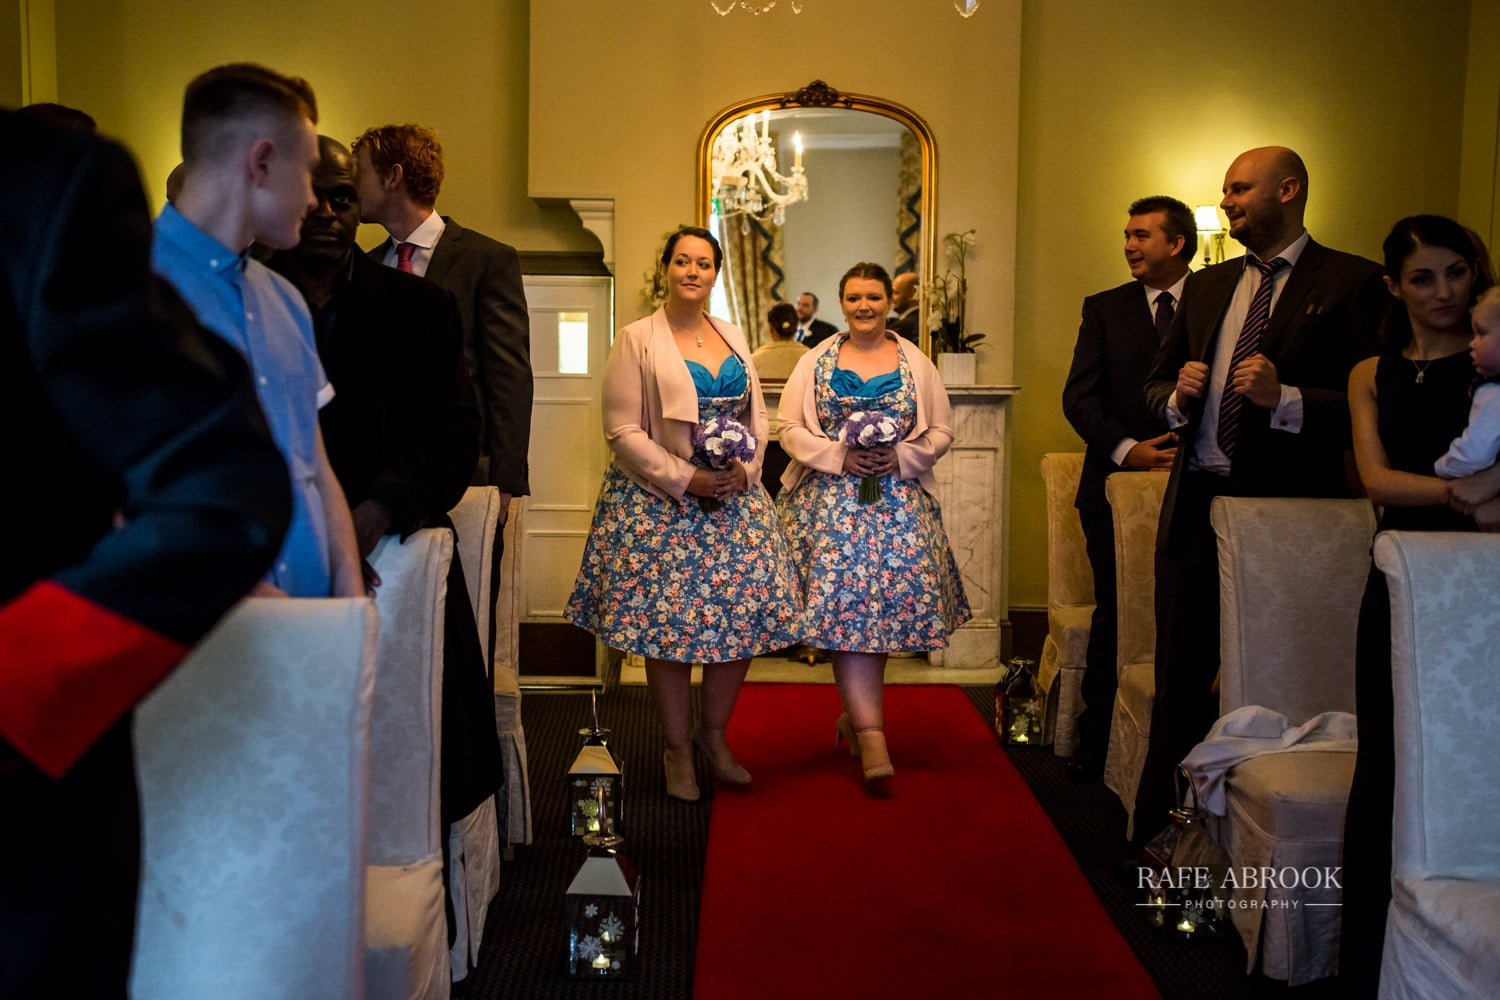 woodland manor hotel clapham bedford wedding hertfordshire wedding photographer-1073.jpg